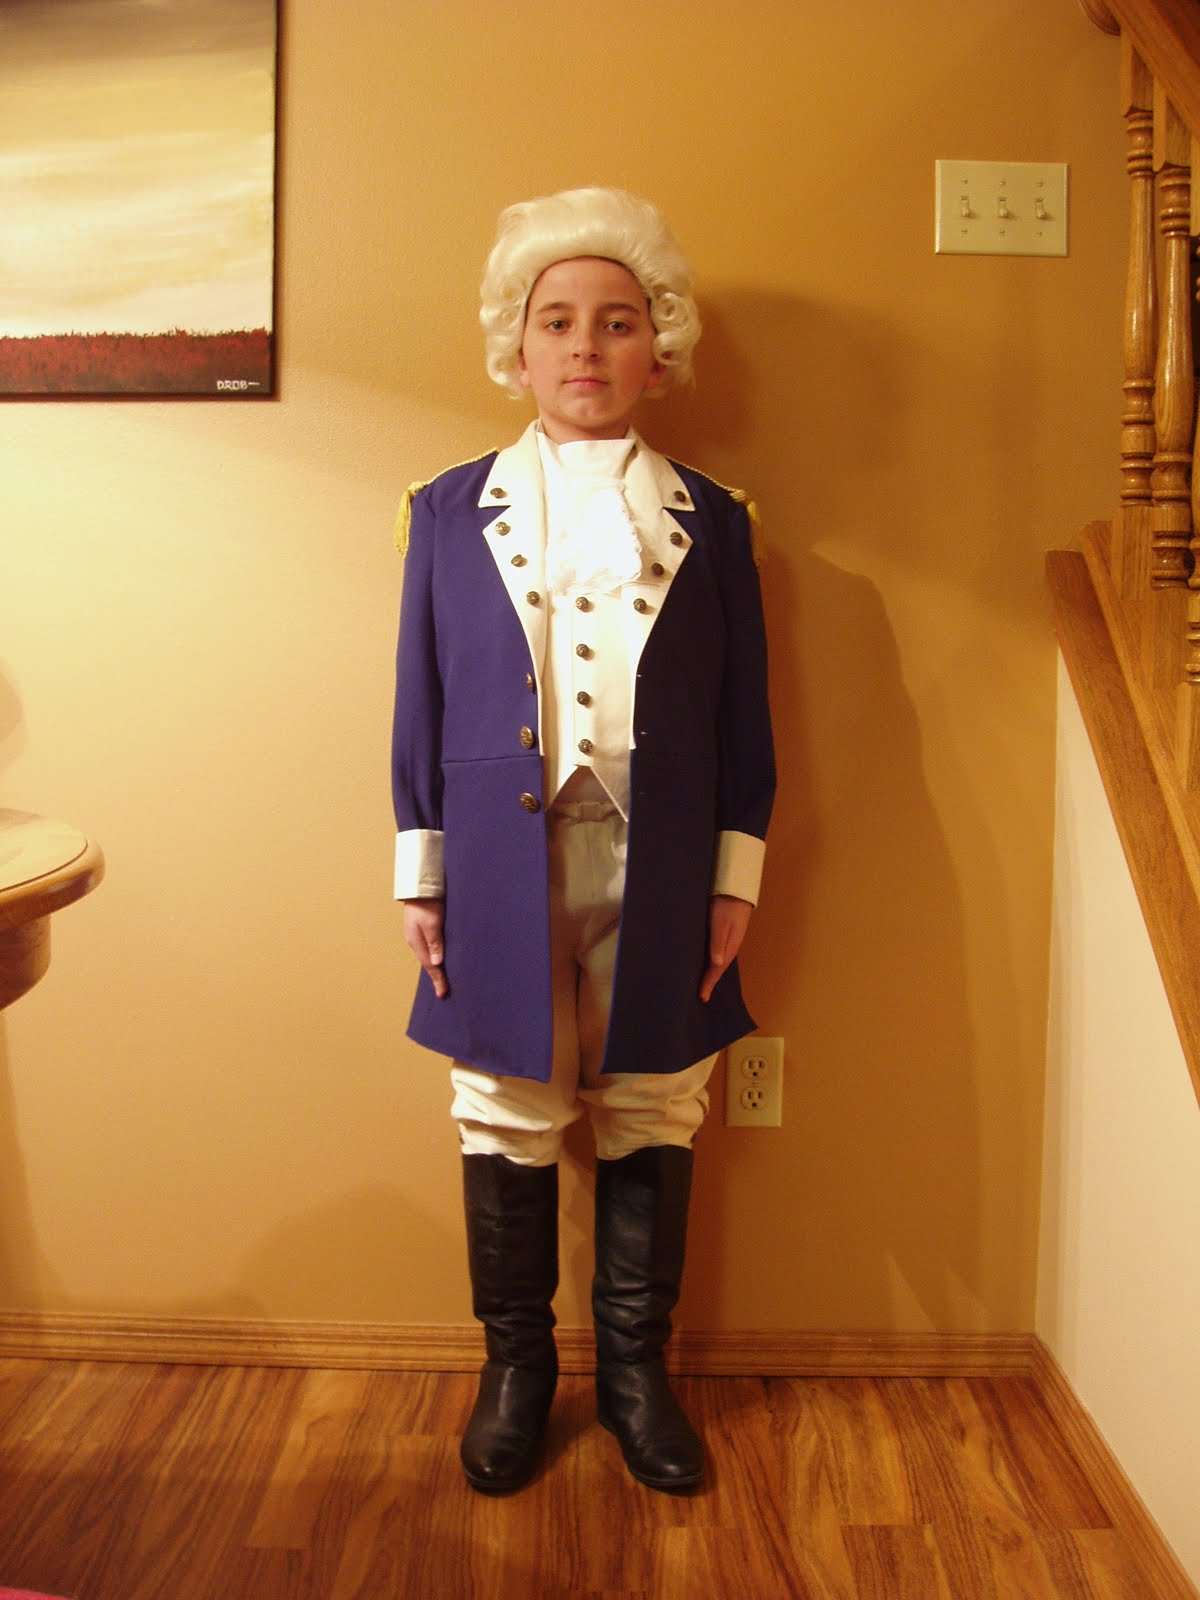 This is a quot george washington quot costume i made for a wax museum project